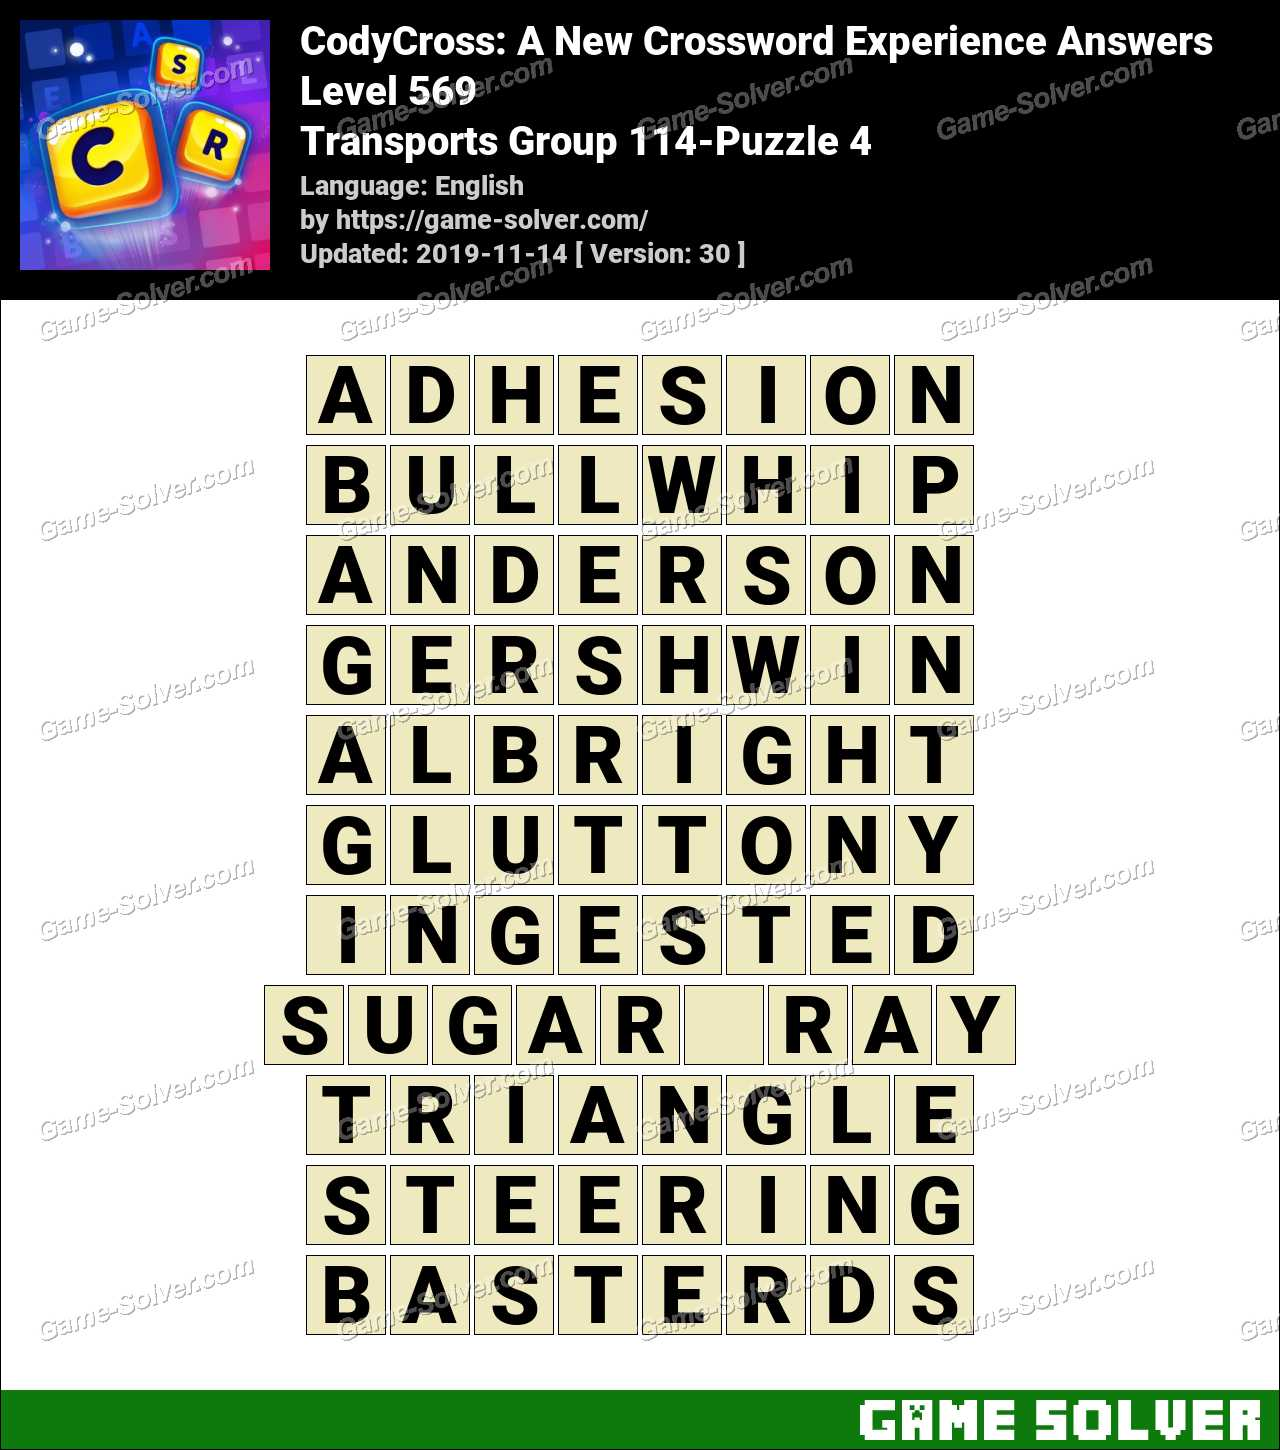 CodyCross Transports Group 114-Puzzle 4 Answers